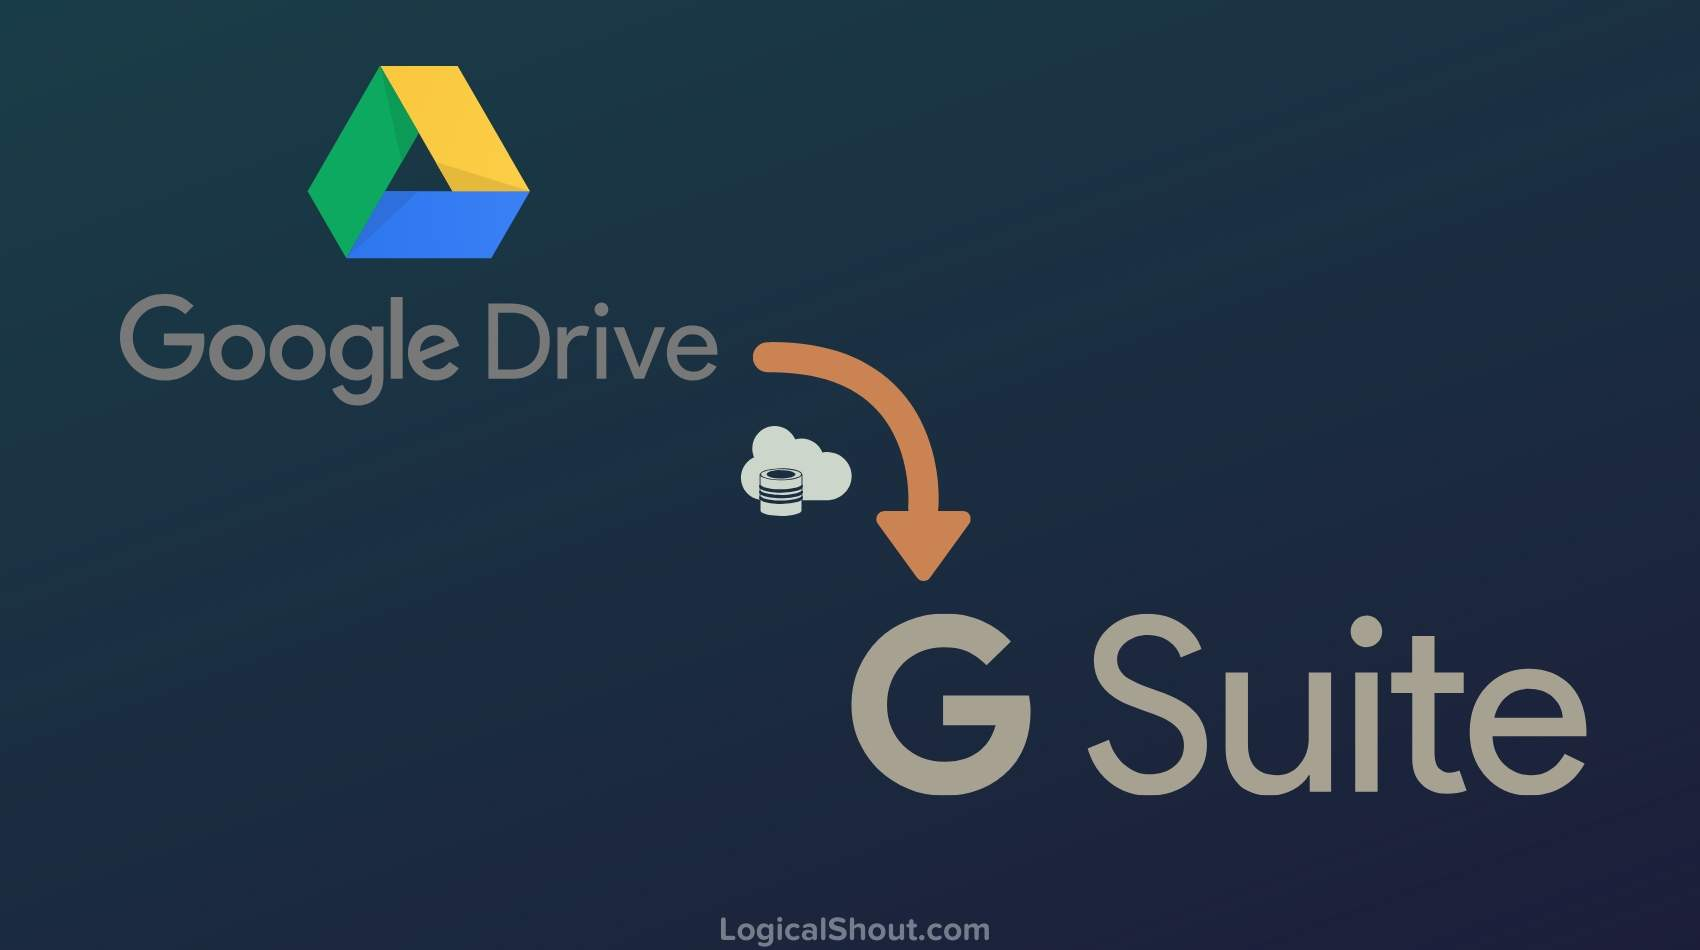 Google Drive to G Suite